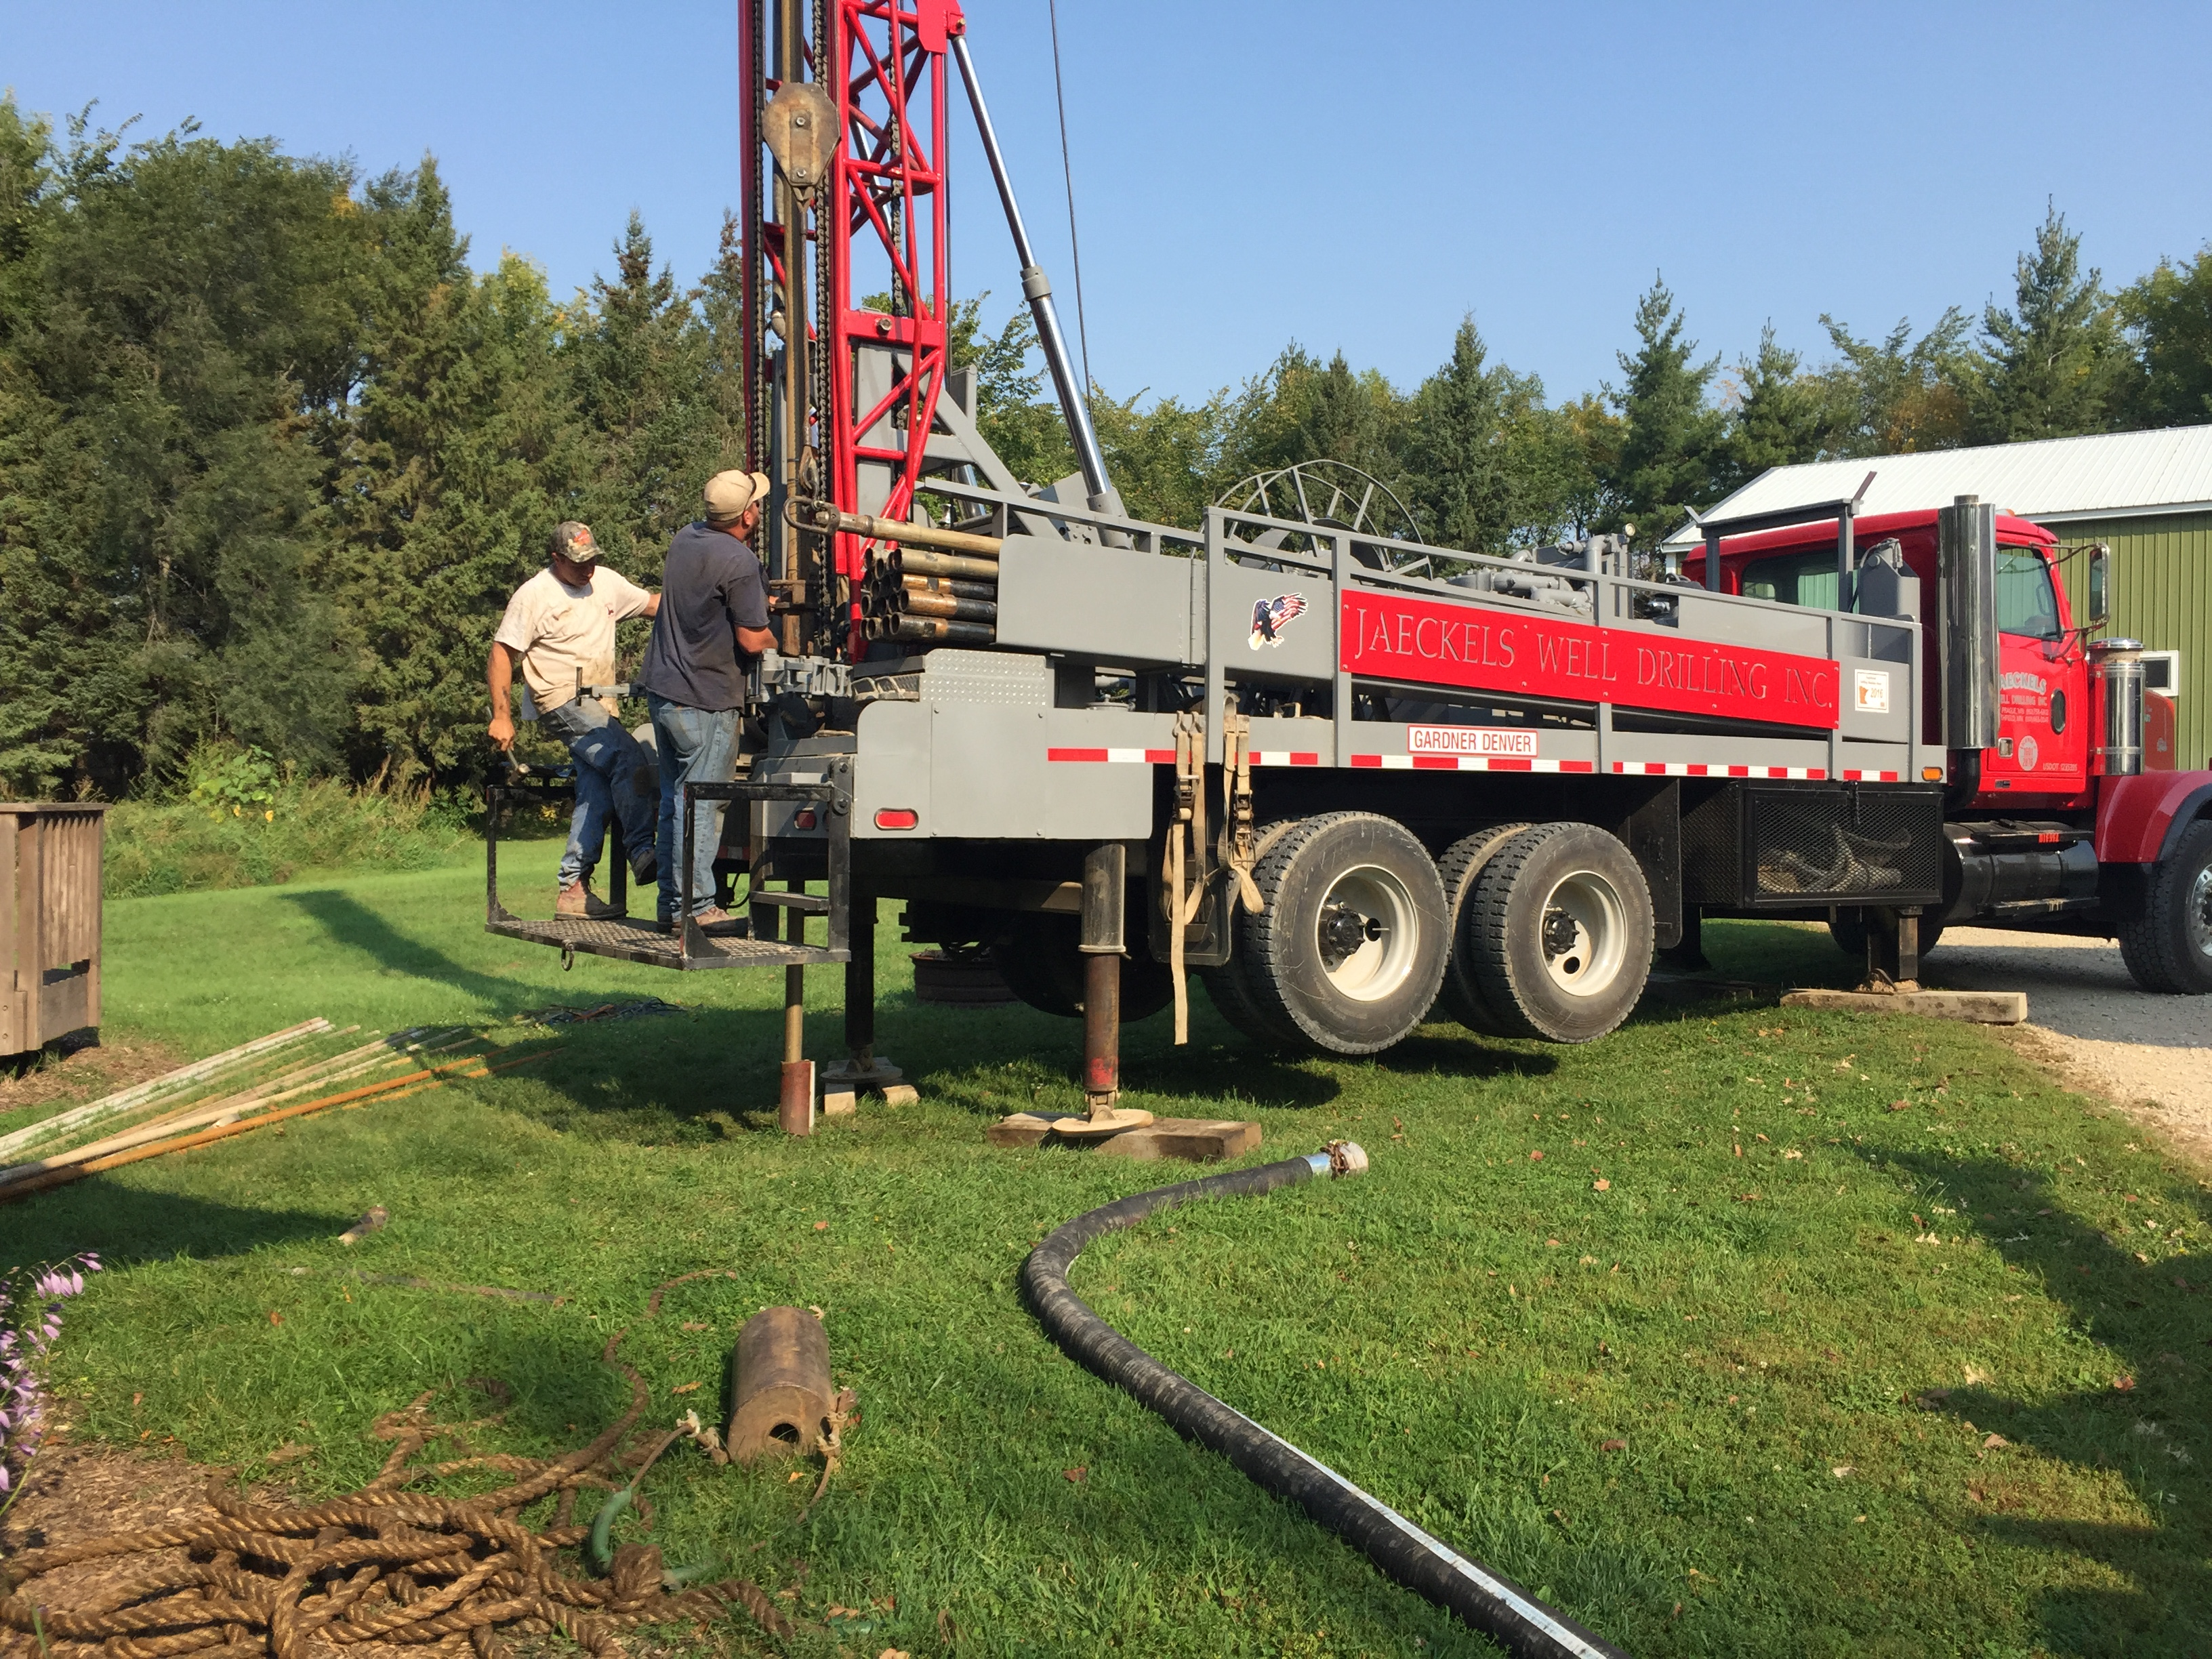 Jaeckels Well Drilling, Inc. image 3